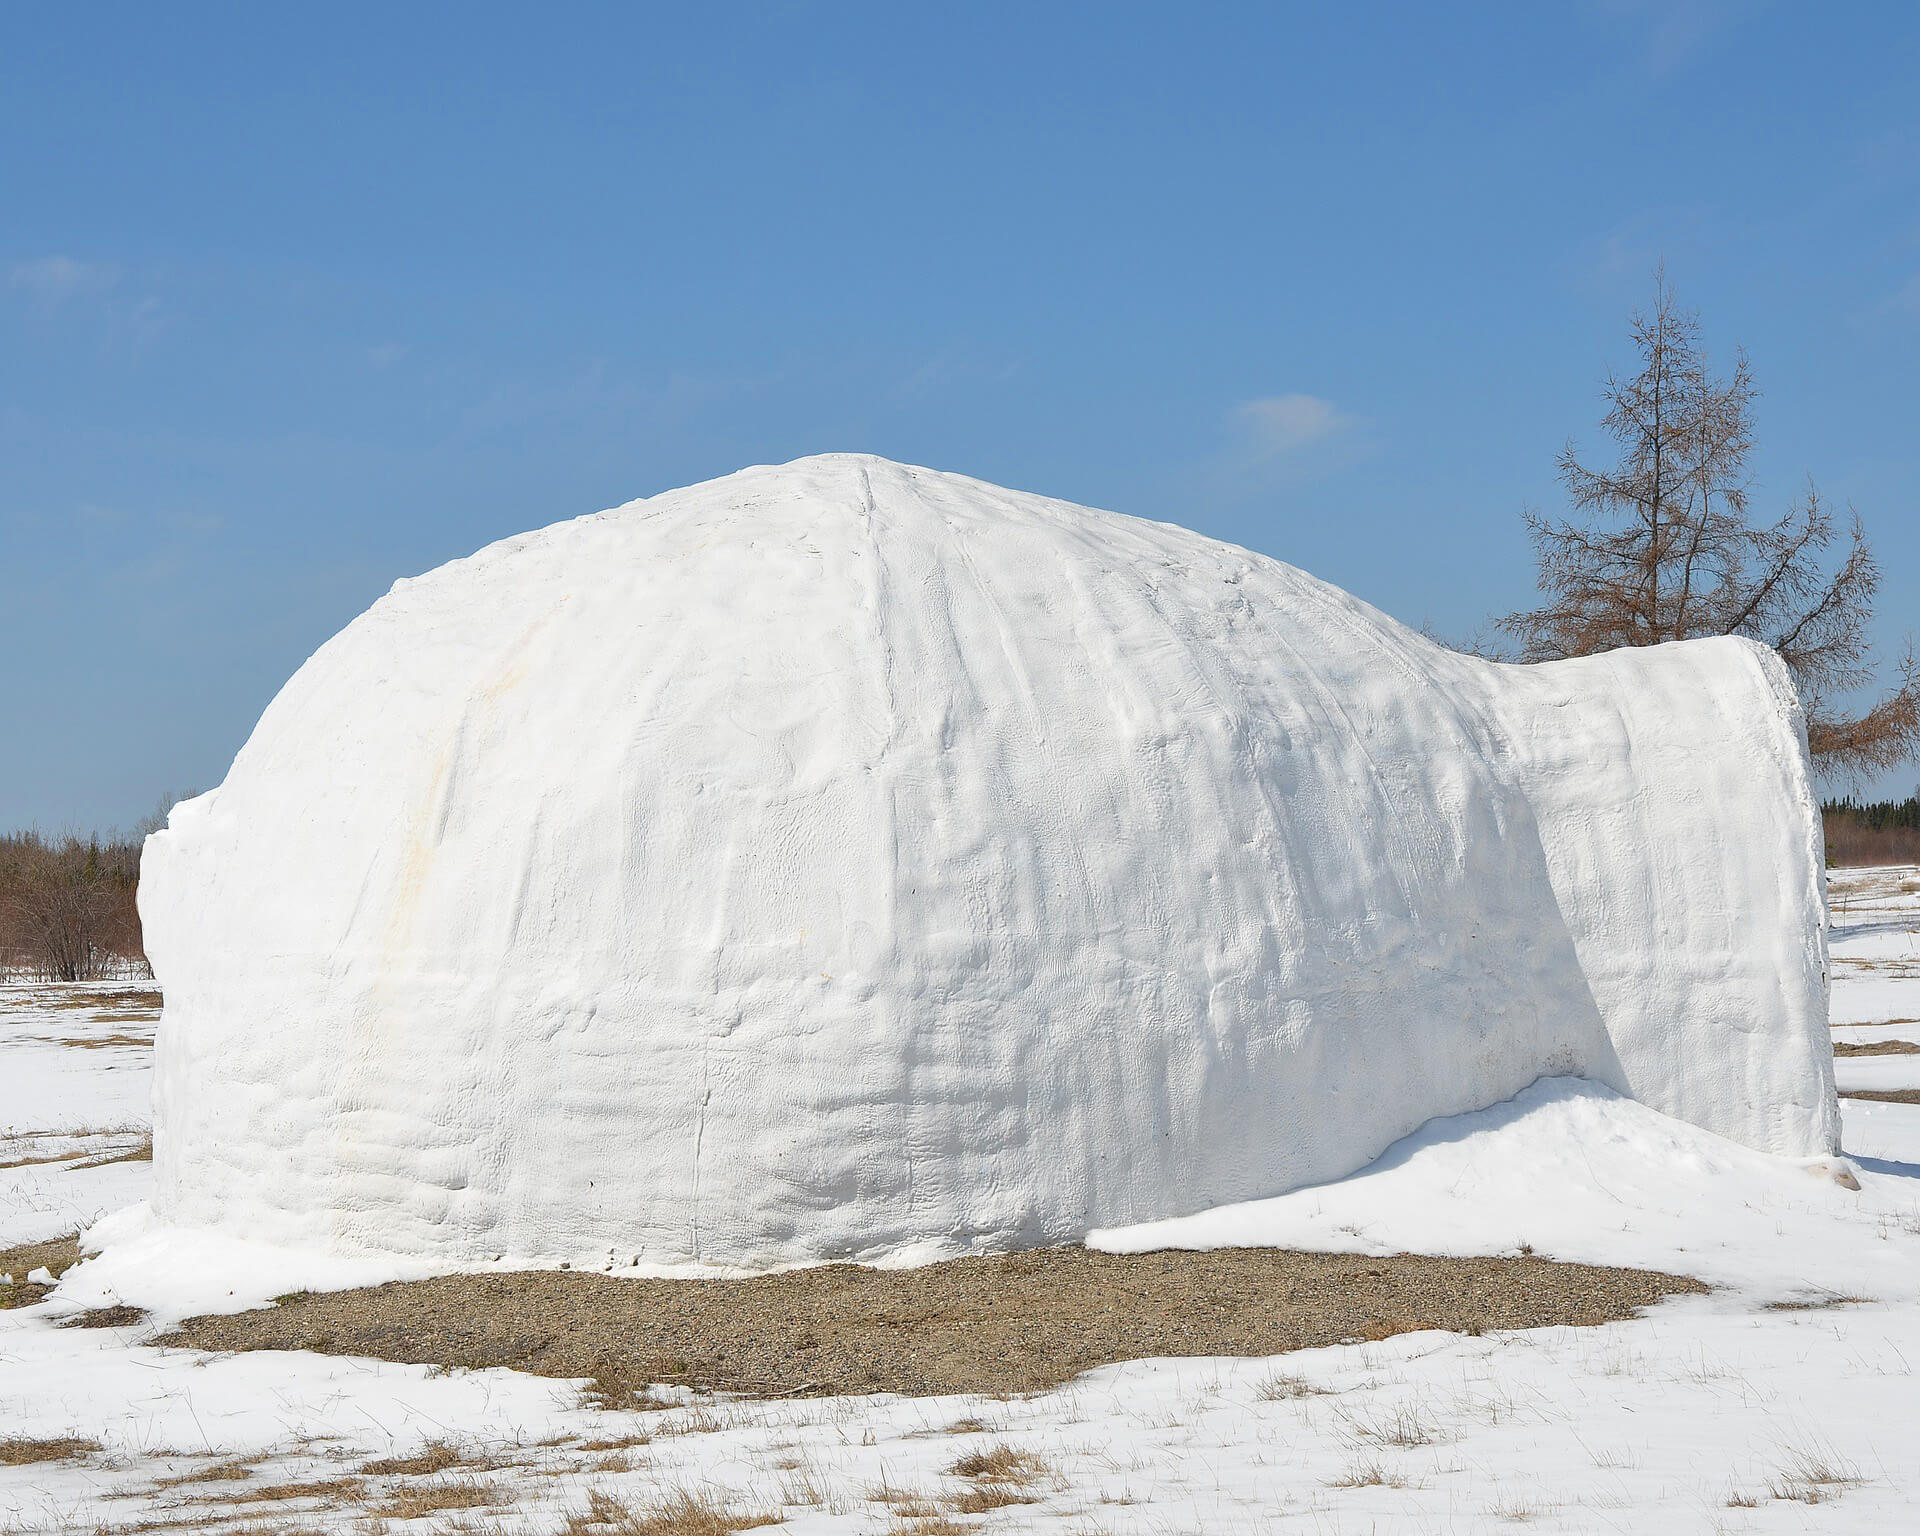 building a homemade snow igloo is a great choice for winter activities